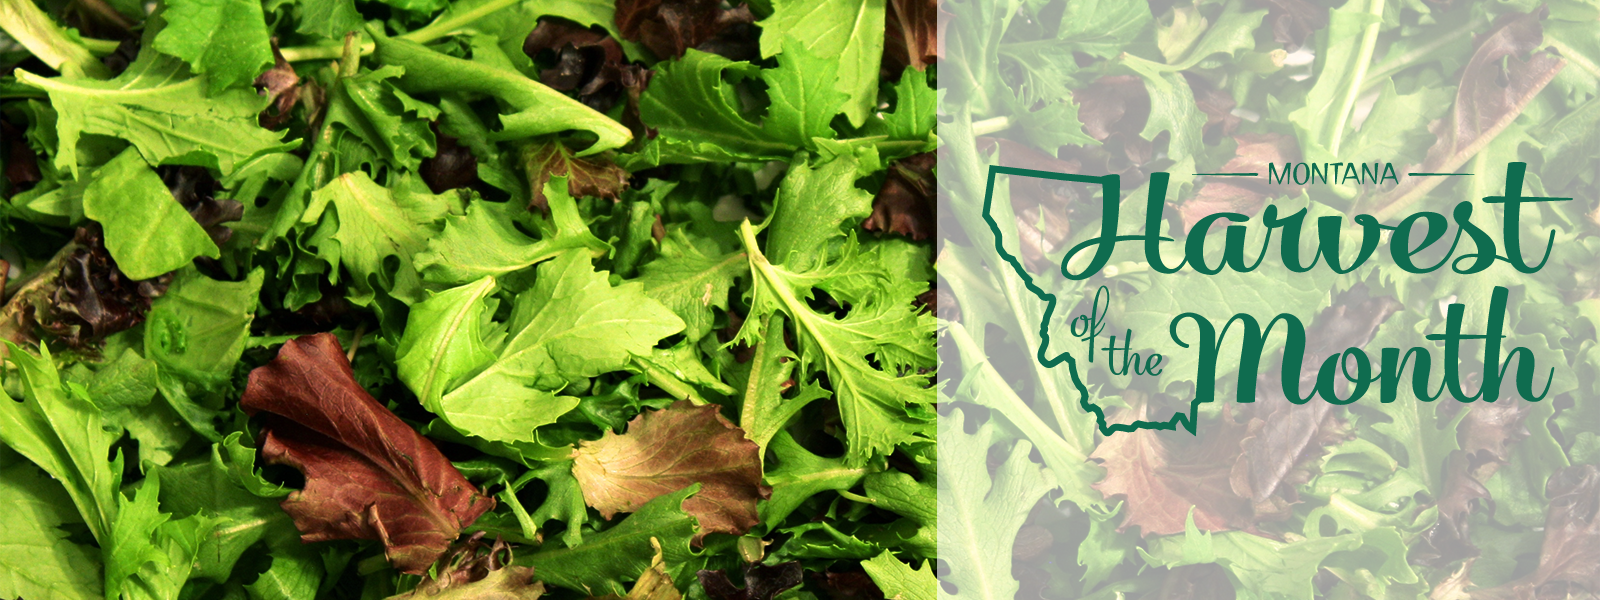 Enjoy leafy greens as this month's Harvest of the Month!